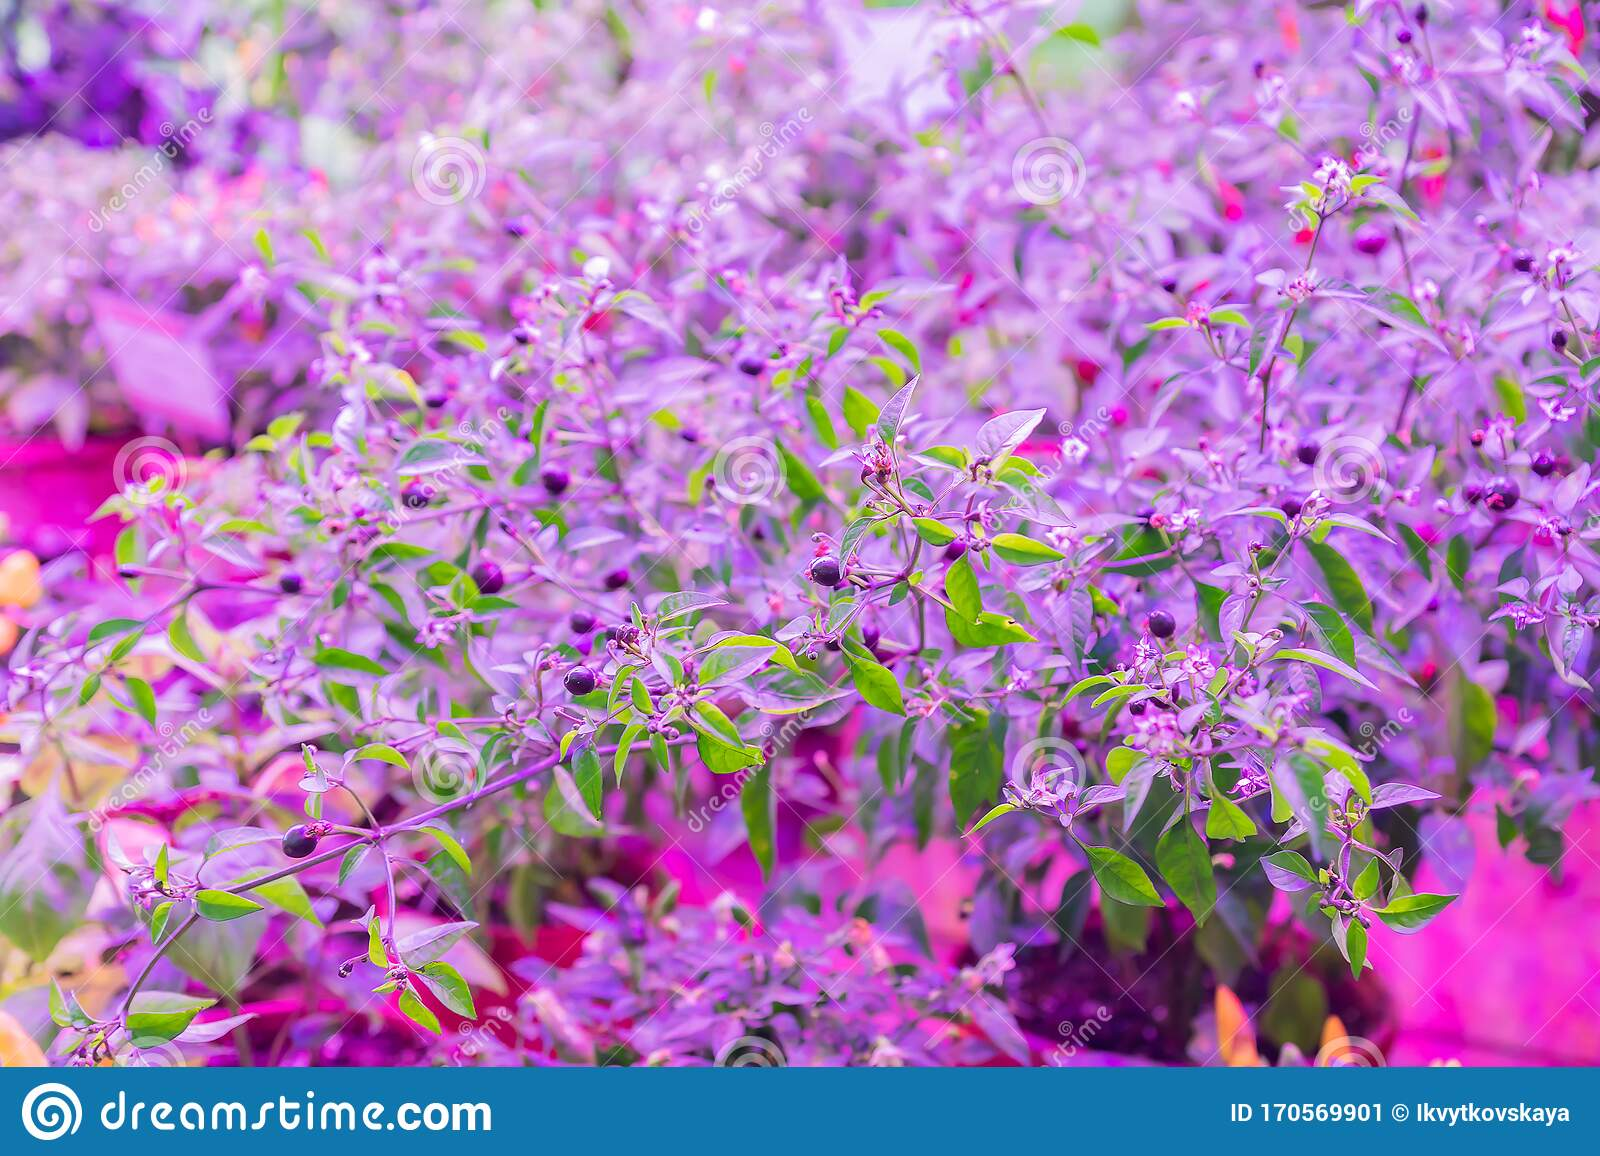 Growing Vegetables Under Led Grow Light Stock Image Image Of